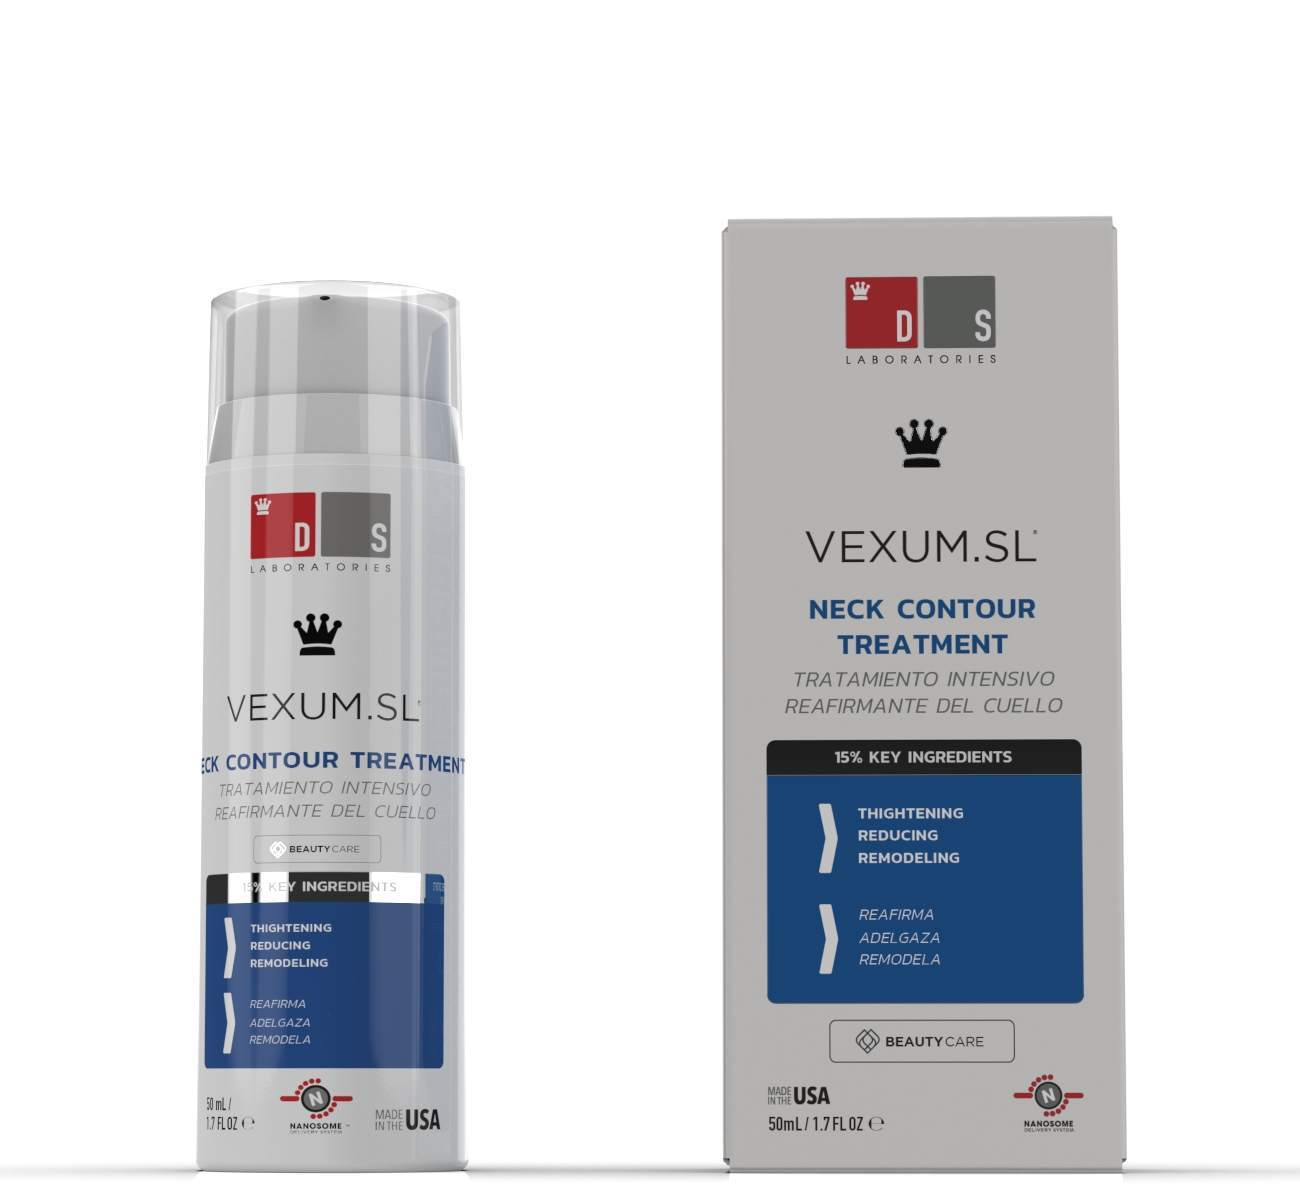 Vexum.SL | Intensive Neck Contour Treatment